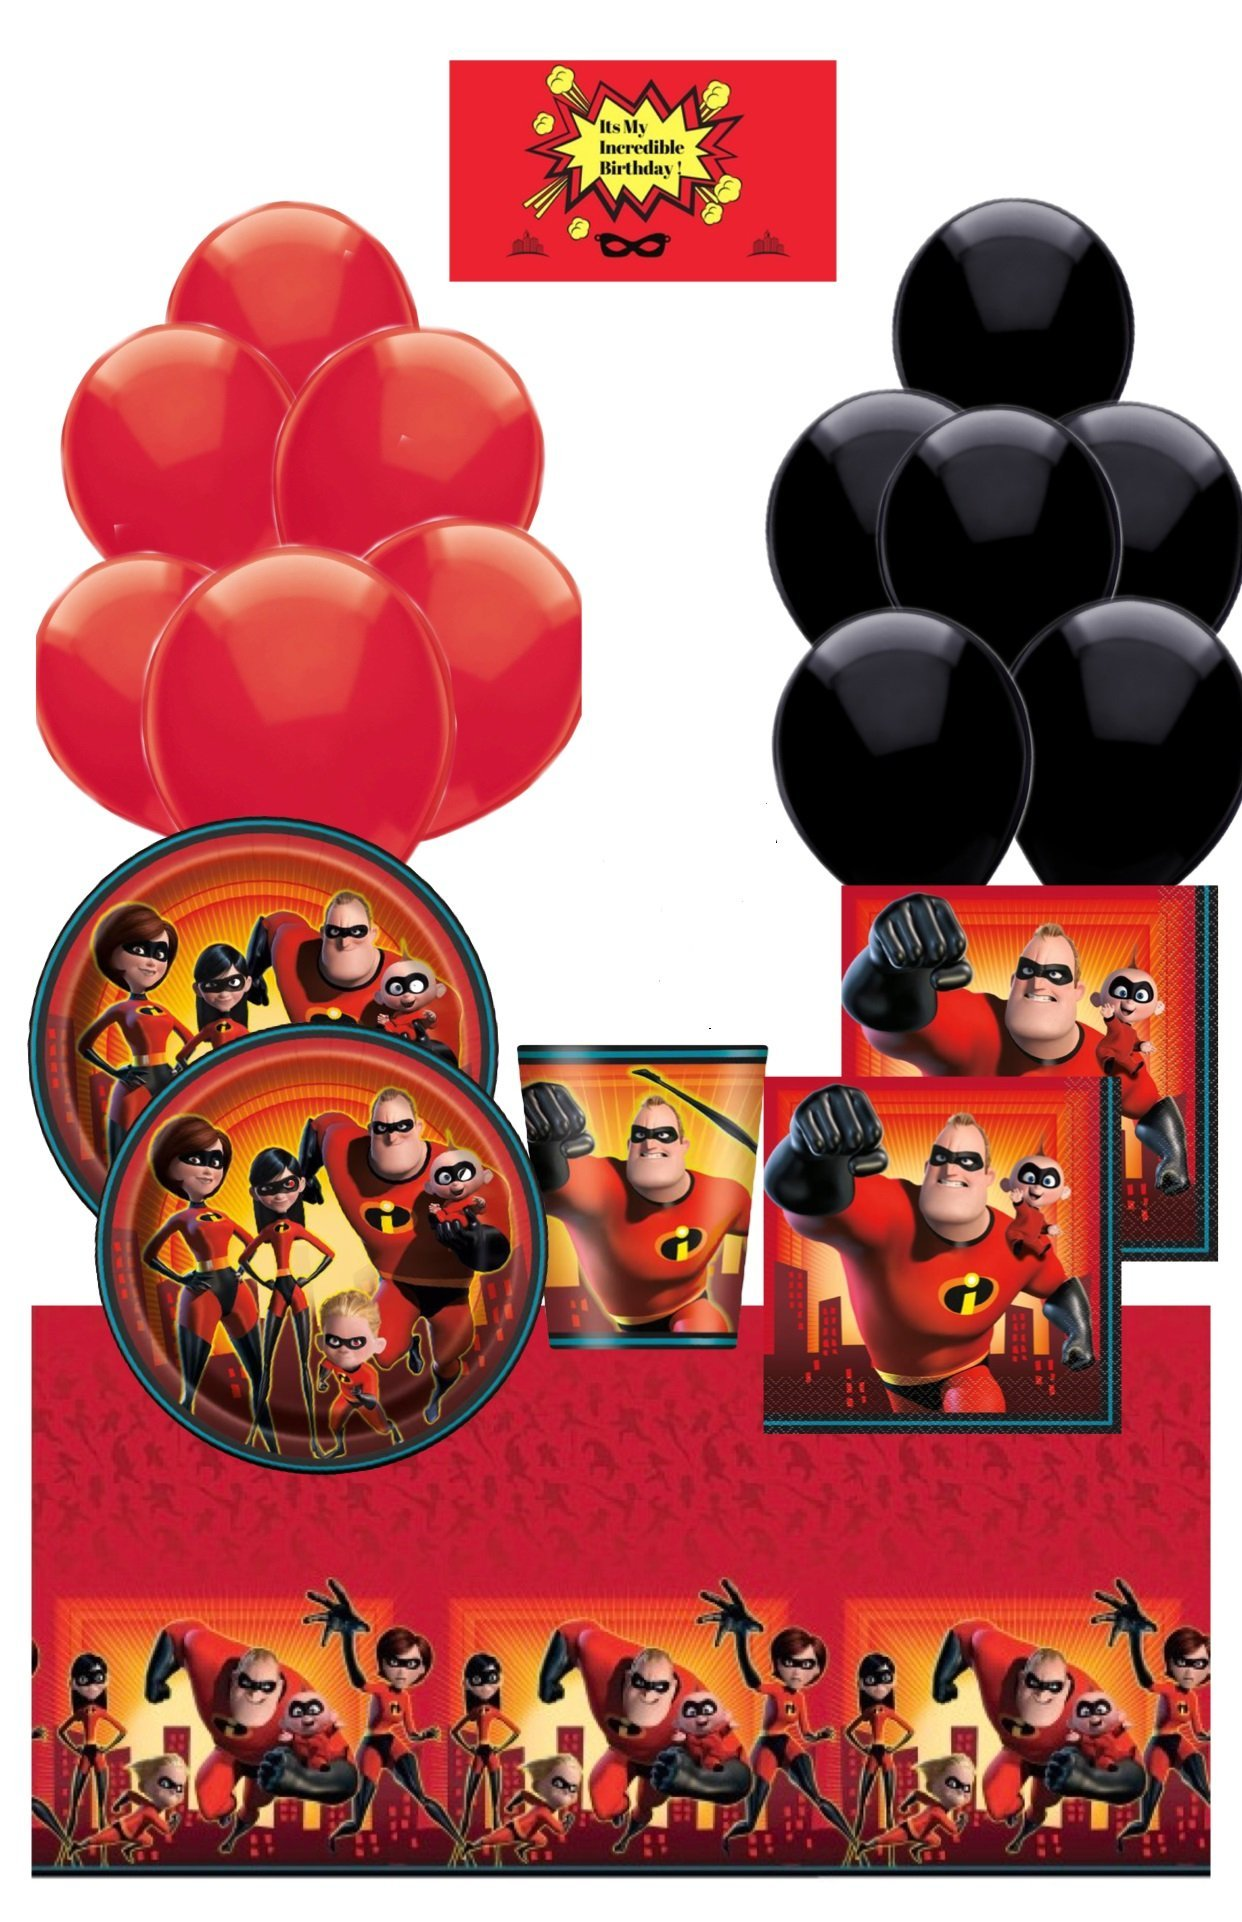 Incredibles 2 Birthday Party Supplies Pack for 16 - Incredibles 2 Table Cover, Plates, Cups, Napkins, Balloons and A Happy Birthday Sticker by JPMD Party House